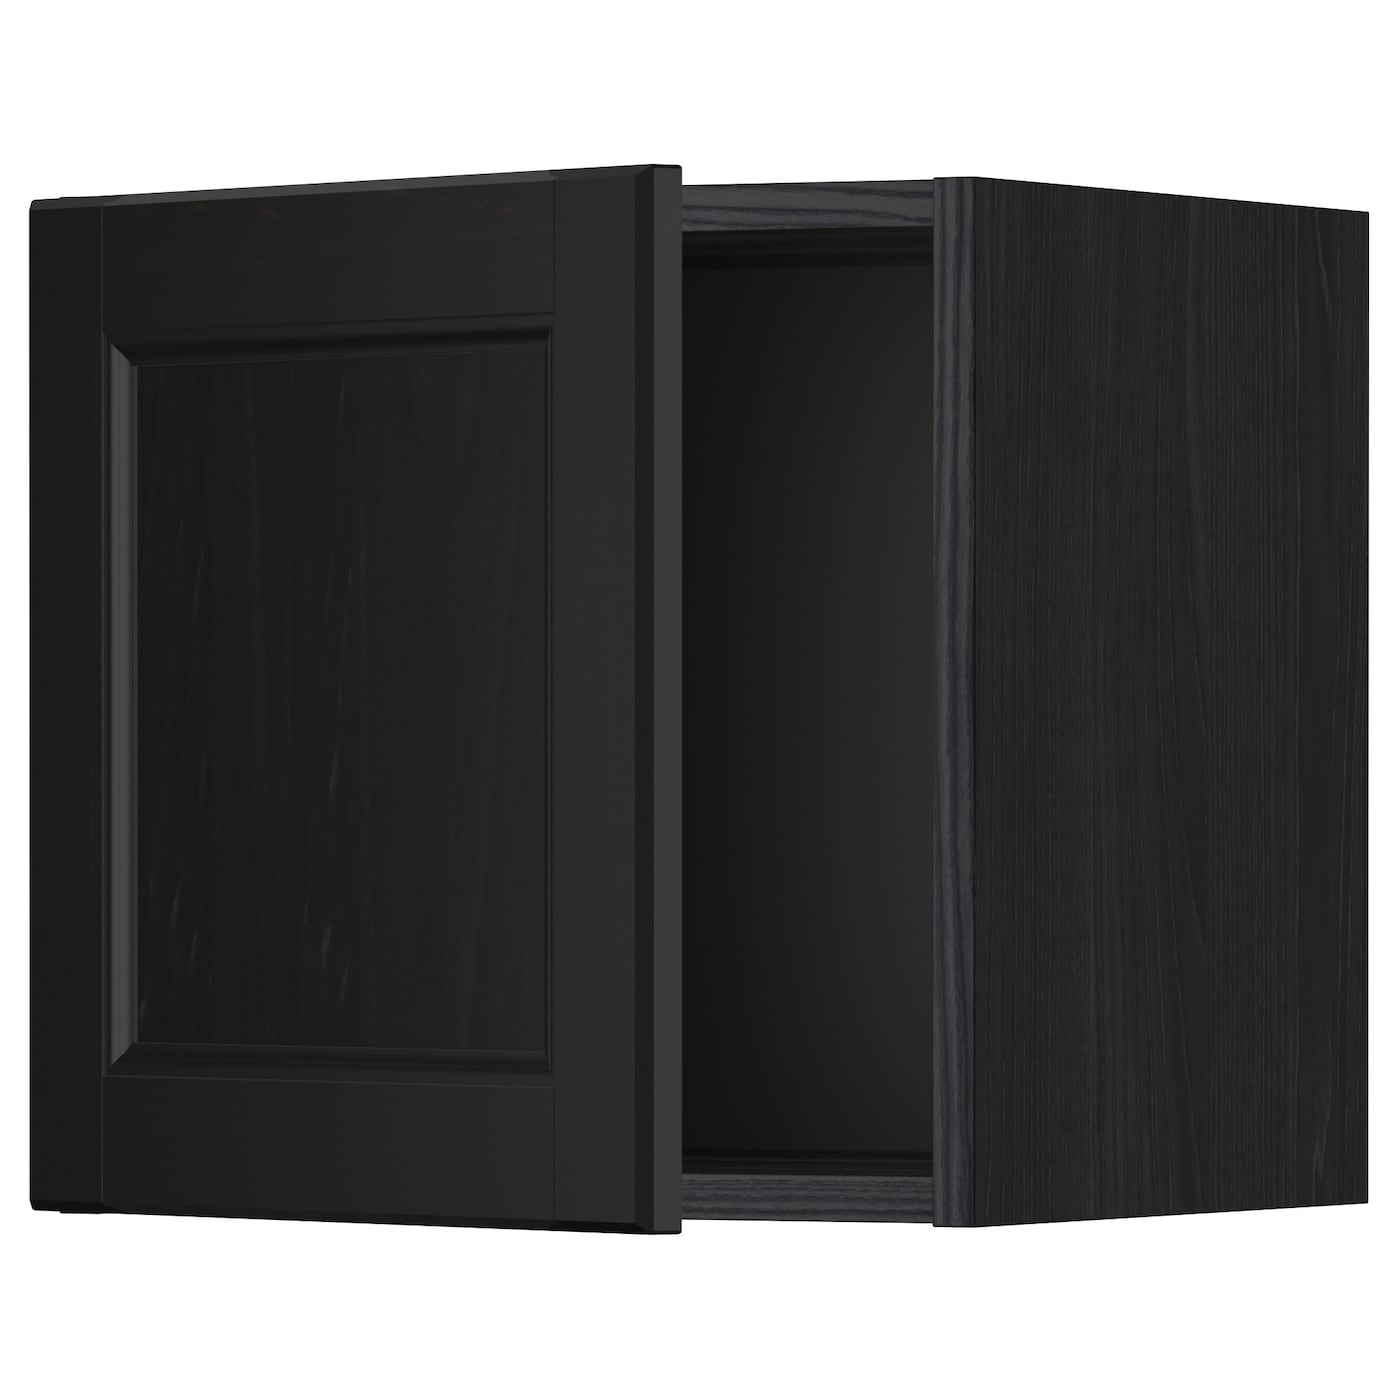 Metod wall cabinet with glass door black laxarby black for Ikea glass door wall cabinet